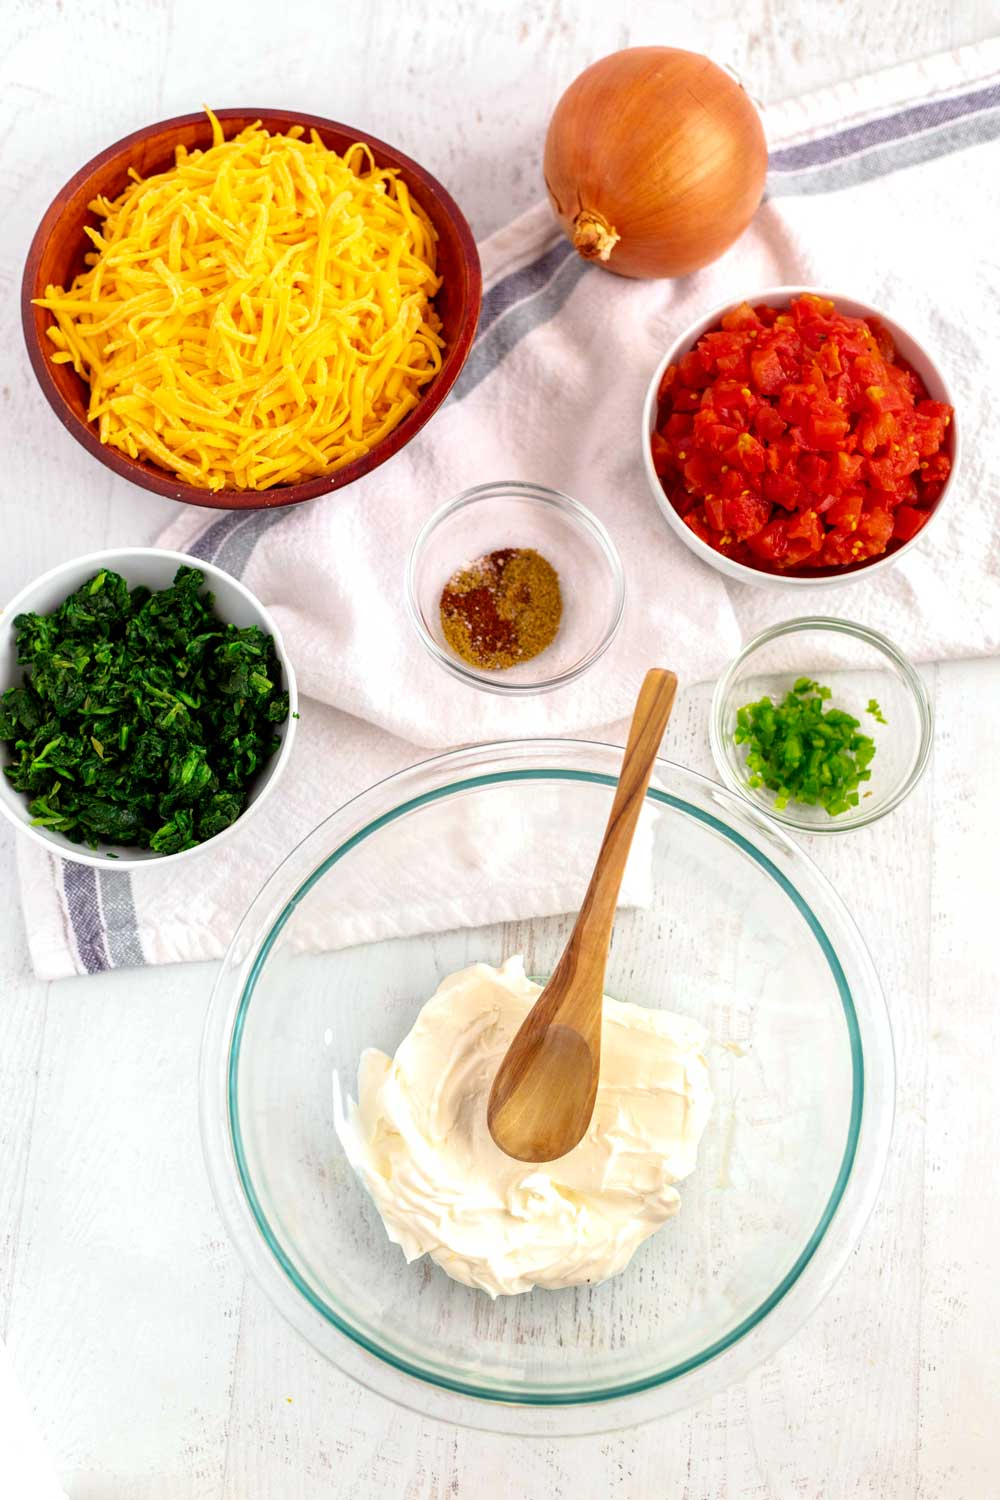 Ingredients for Mexican Spinach Dip